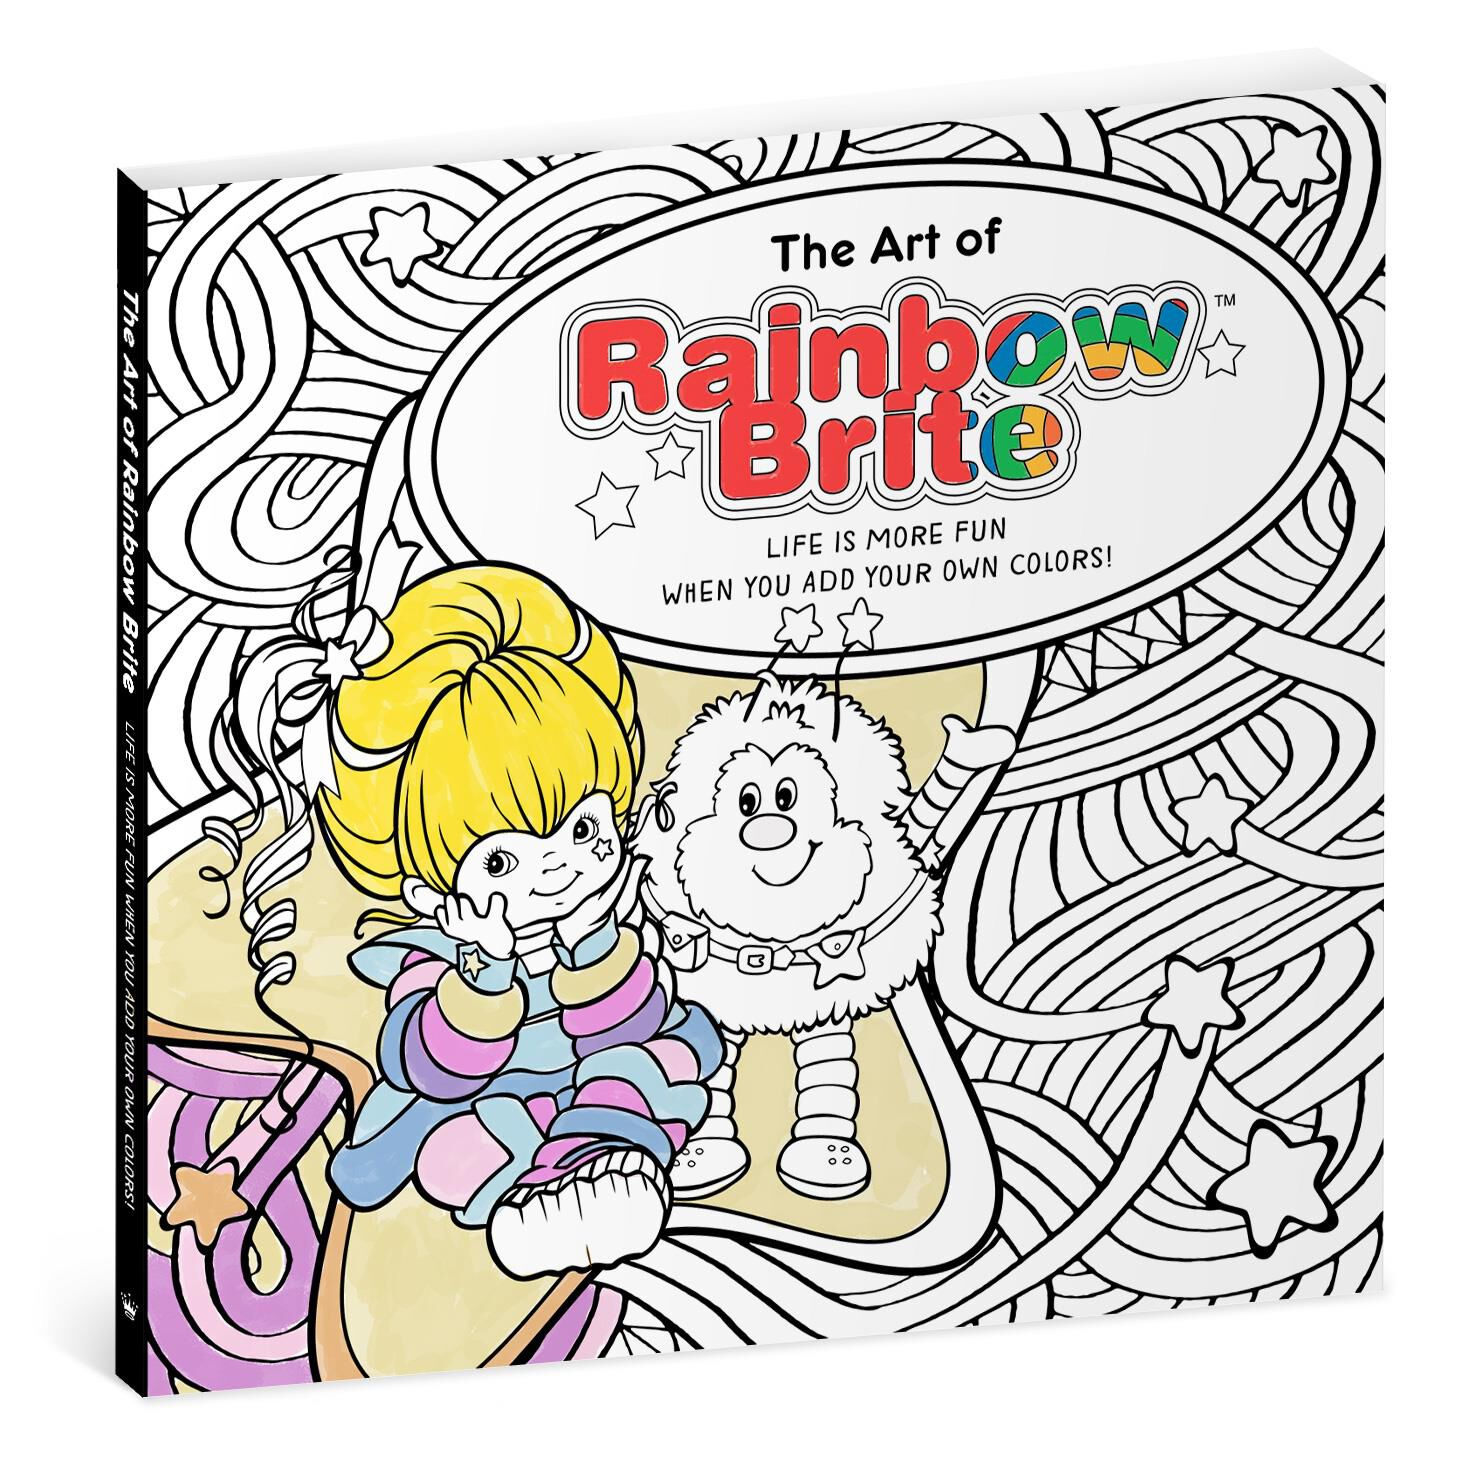 Rainbow brite characters coloring pages - Rainbow Brite Characters Coloring Pages 21